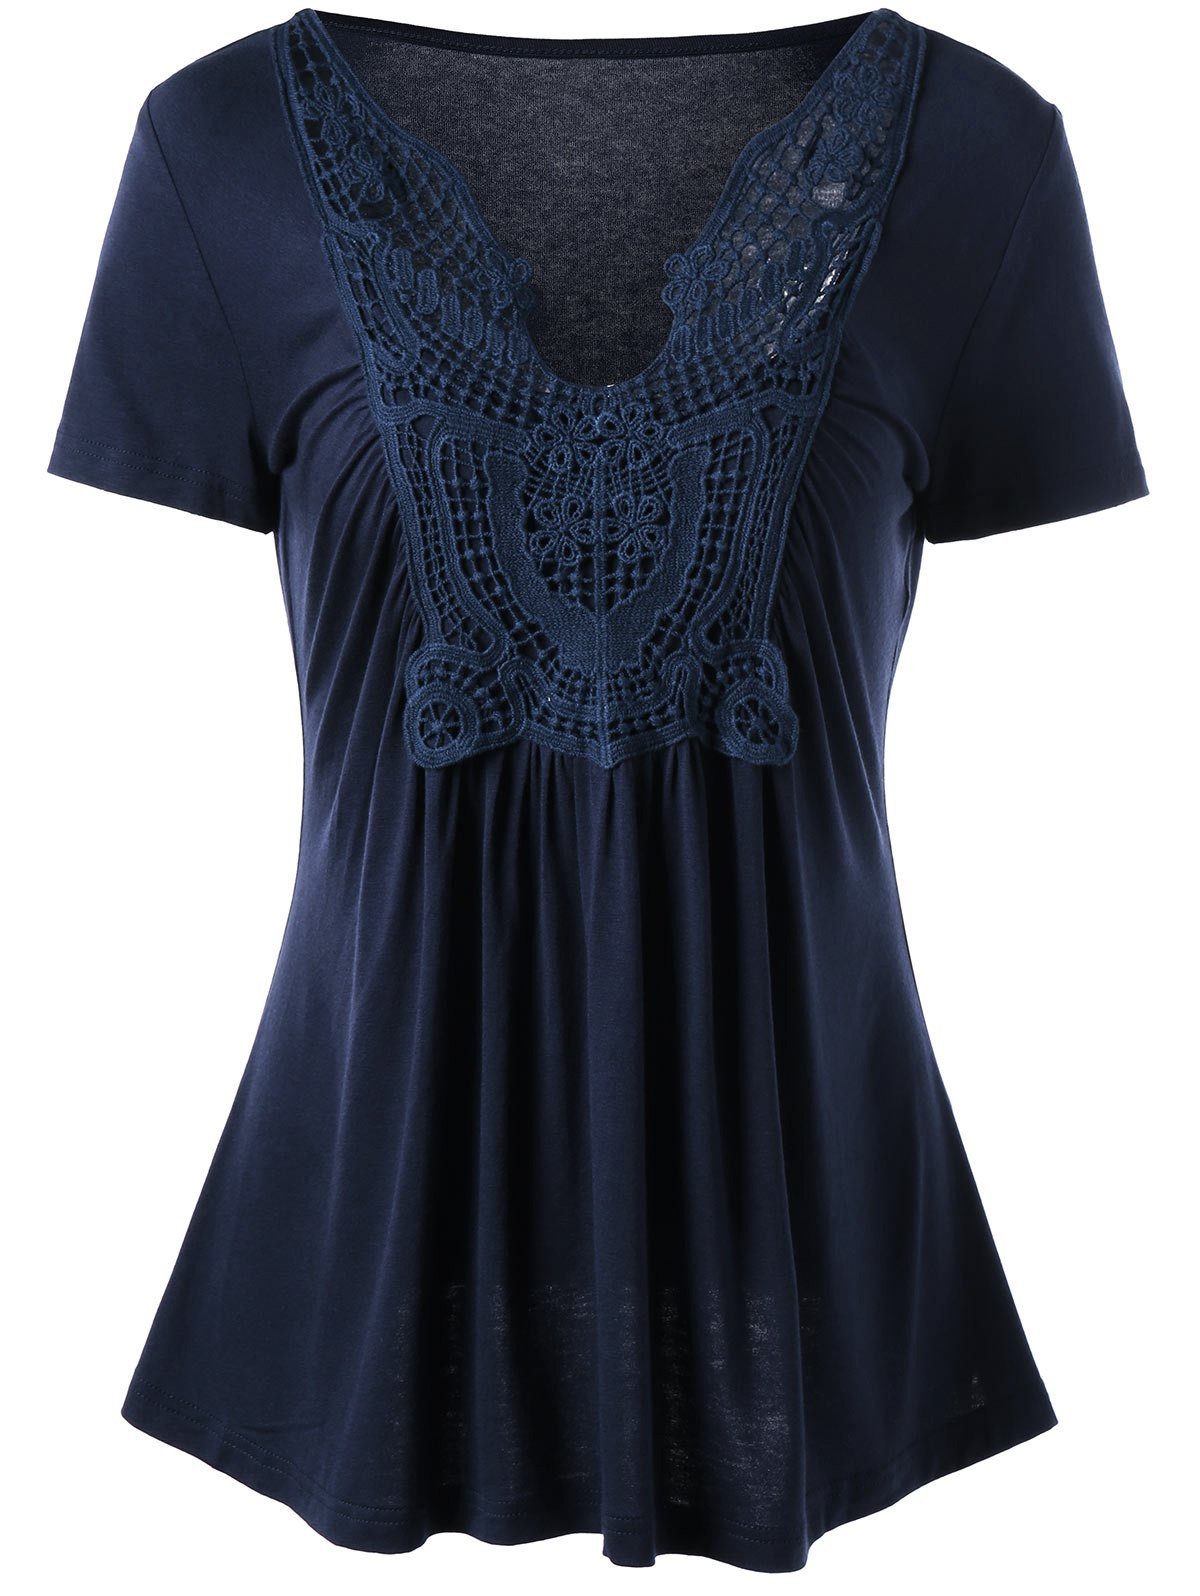 Short Sleeve Crochet Panel Skater T-ShirtWOMEN<br><br>Size: XL; Color: PURPLISH BLUE; Material: Nylon,Spandex; Shirt Length: Regular; Sleeve Length: Short; Collar: V-Neck; Style: Fashion; Season: Fall,Spring,Summer; Pattern Type: Solid Color; Weight: 0.2700kg; Package Contents: 1 x T-Shirt;